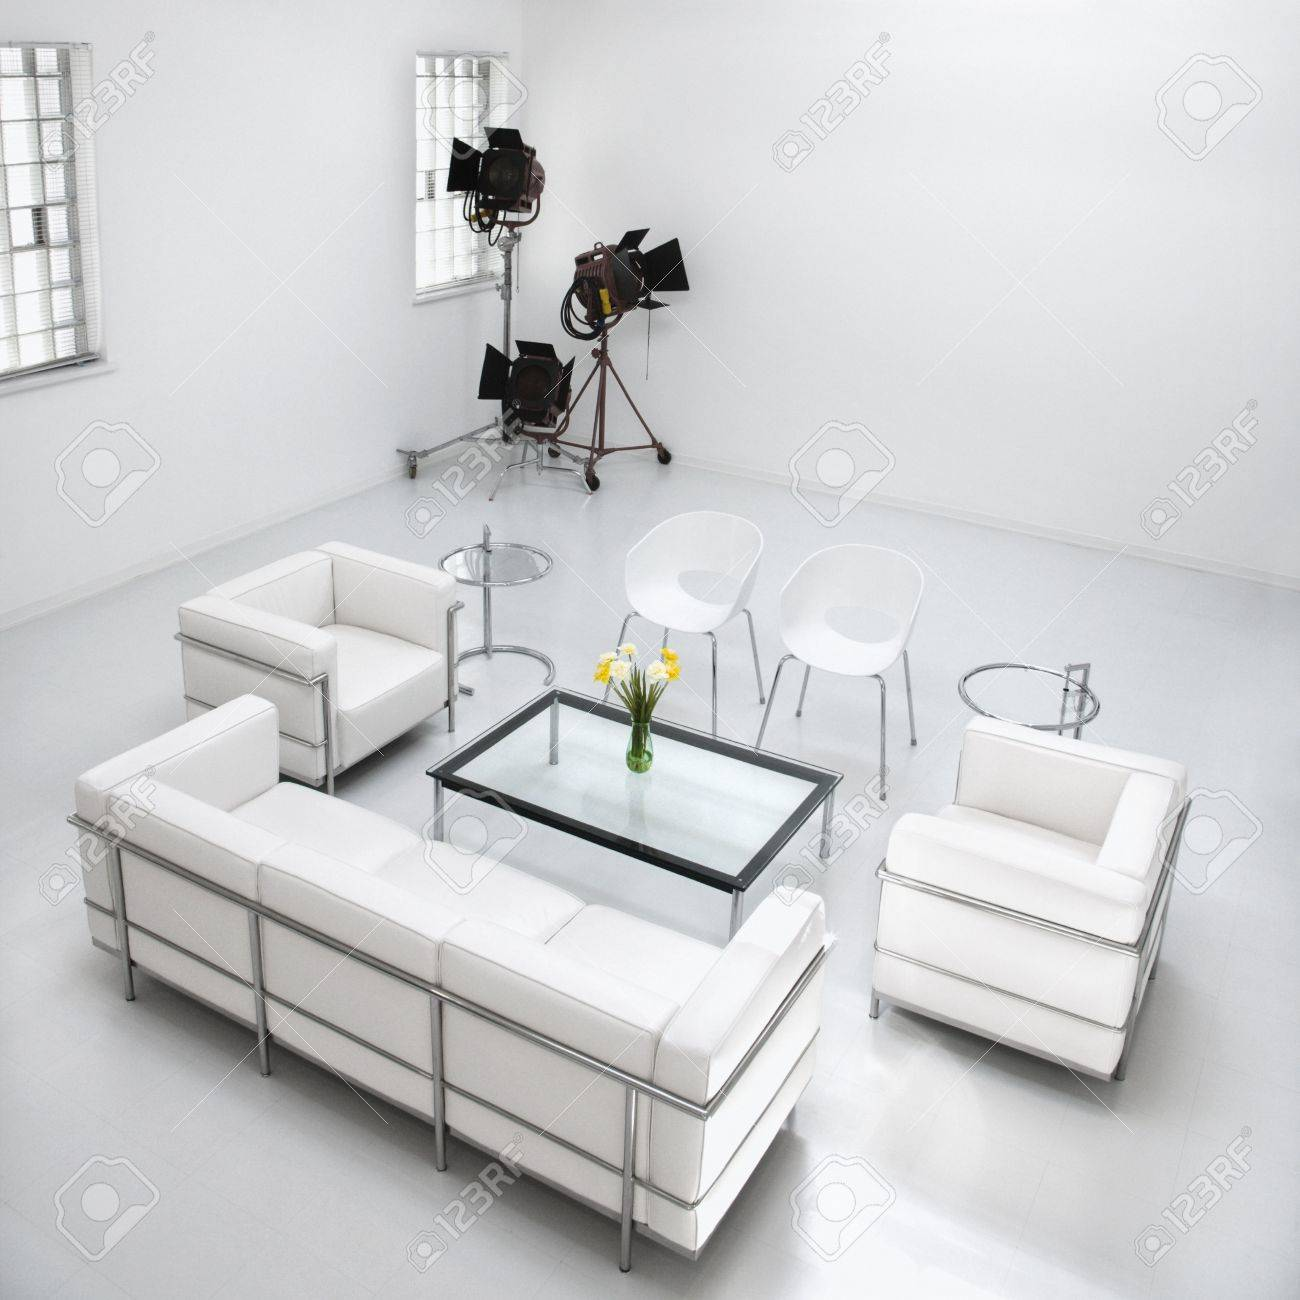 White Living Room Furniture In A White Photography Studio With ...